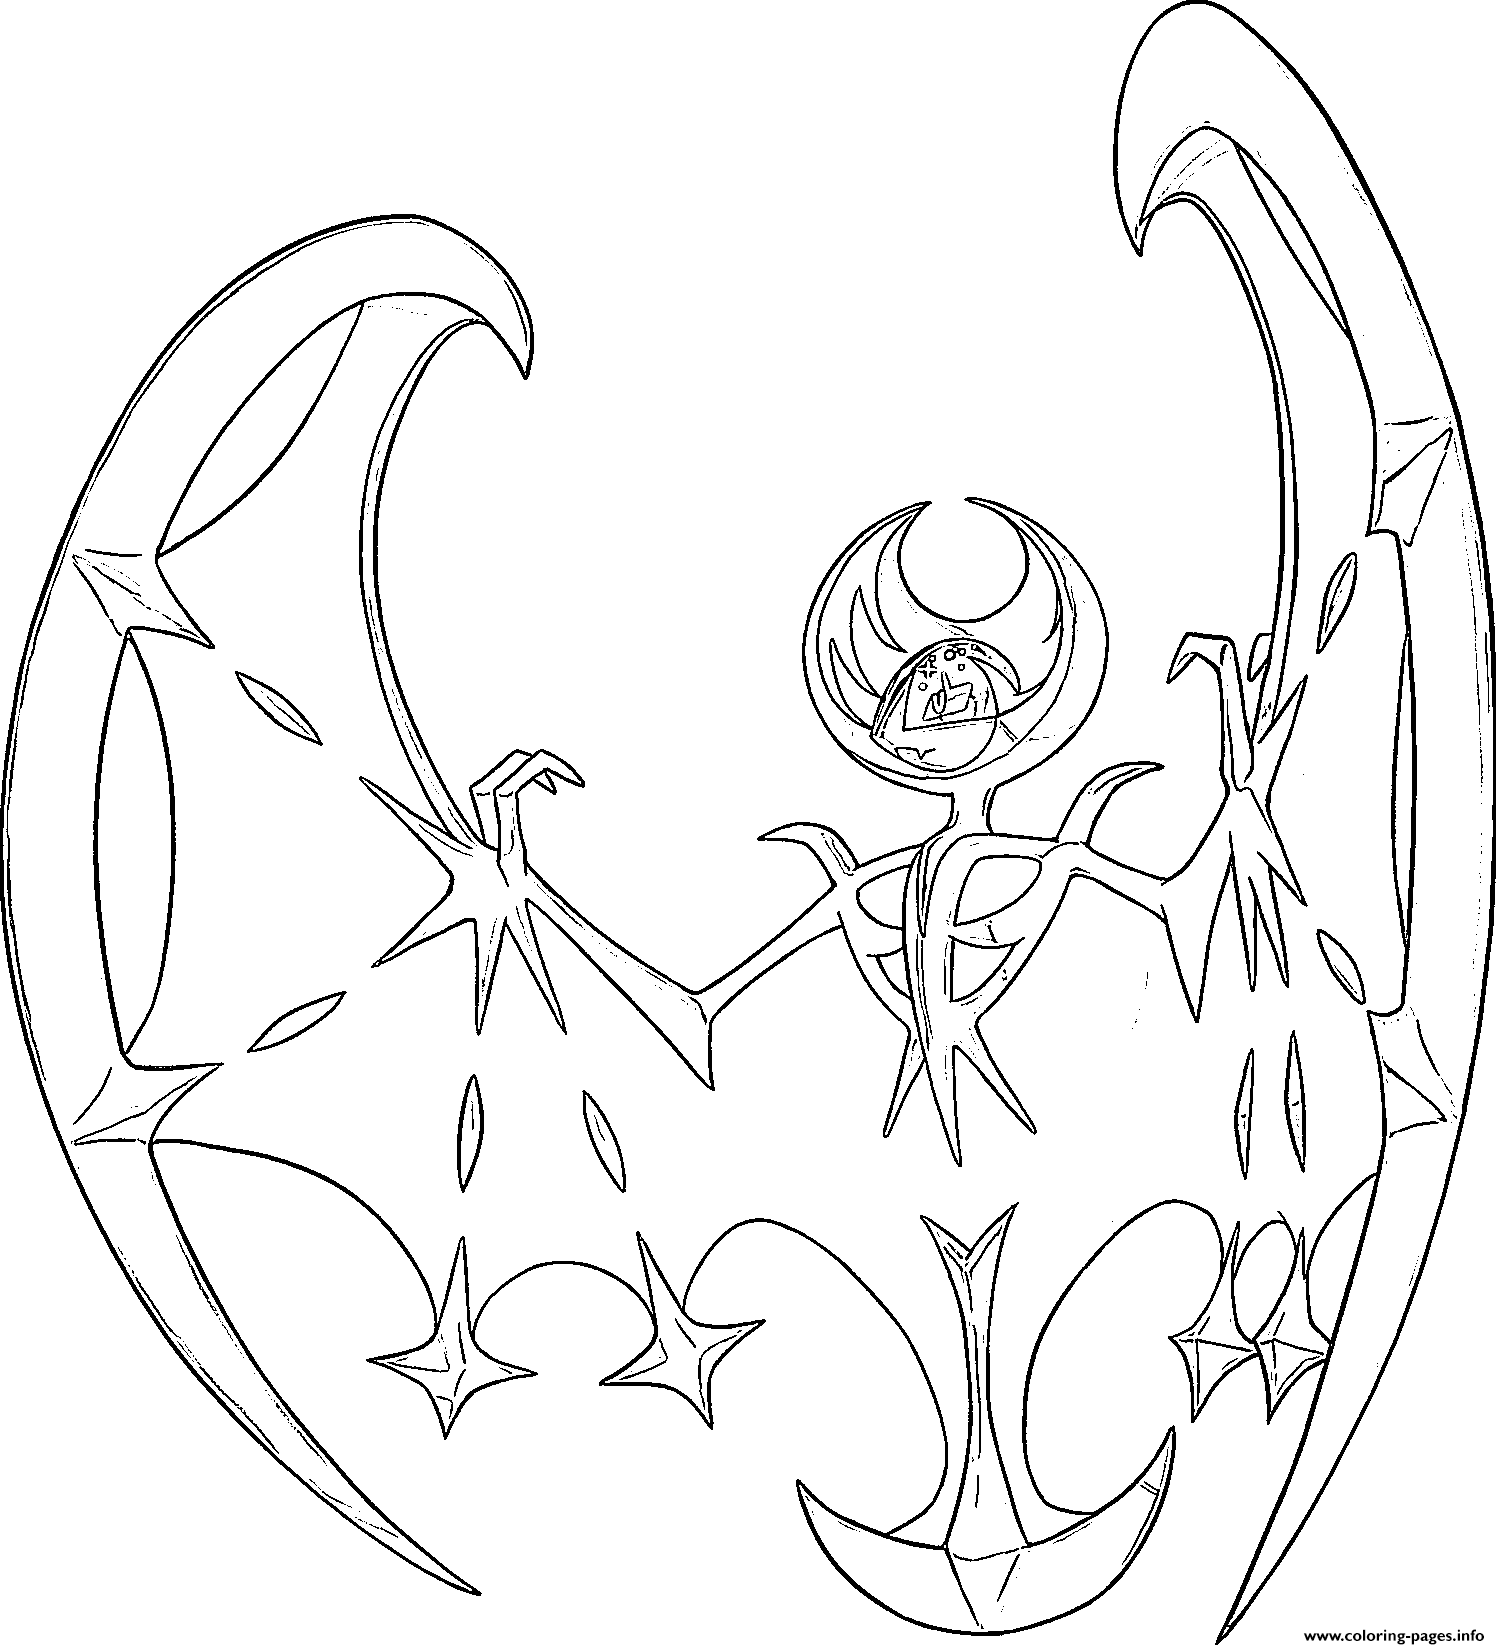 Lunala Pokemon Legendary Generation 7 Coloring Pages Printable